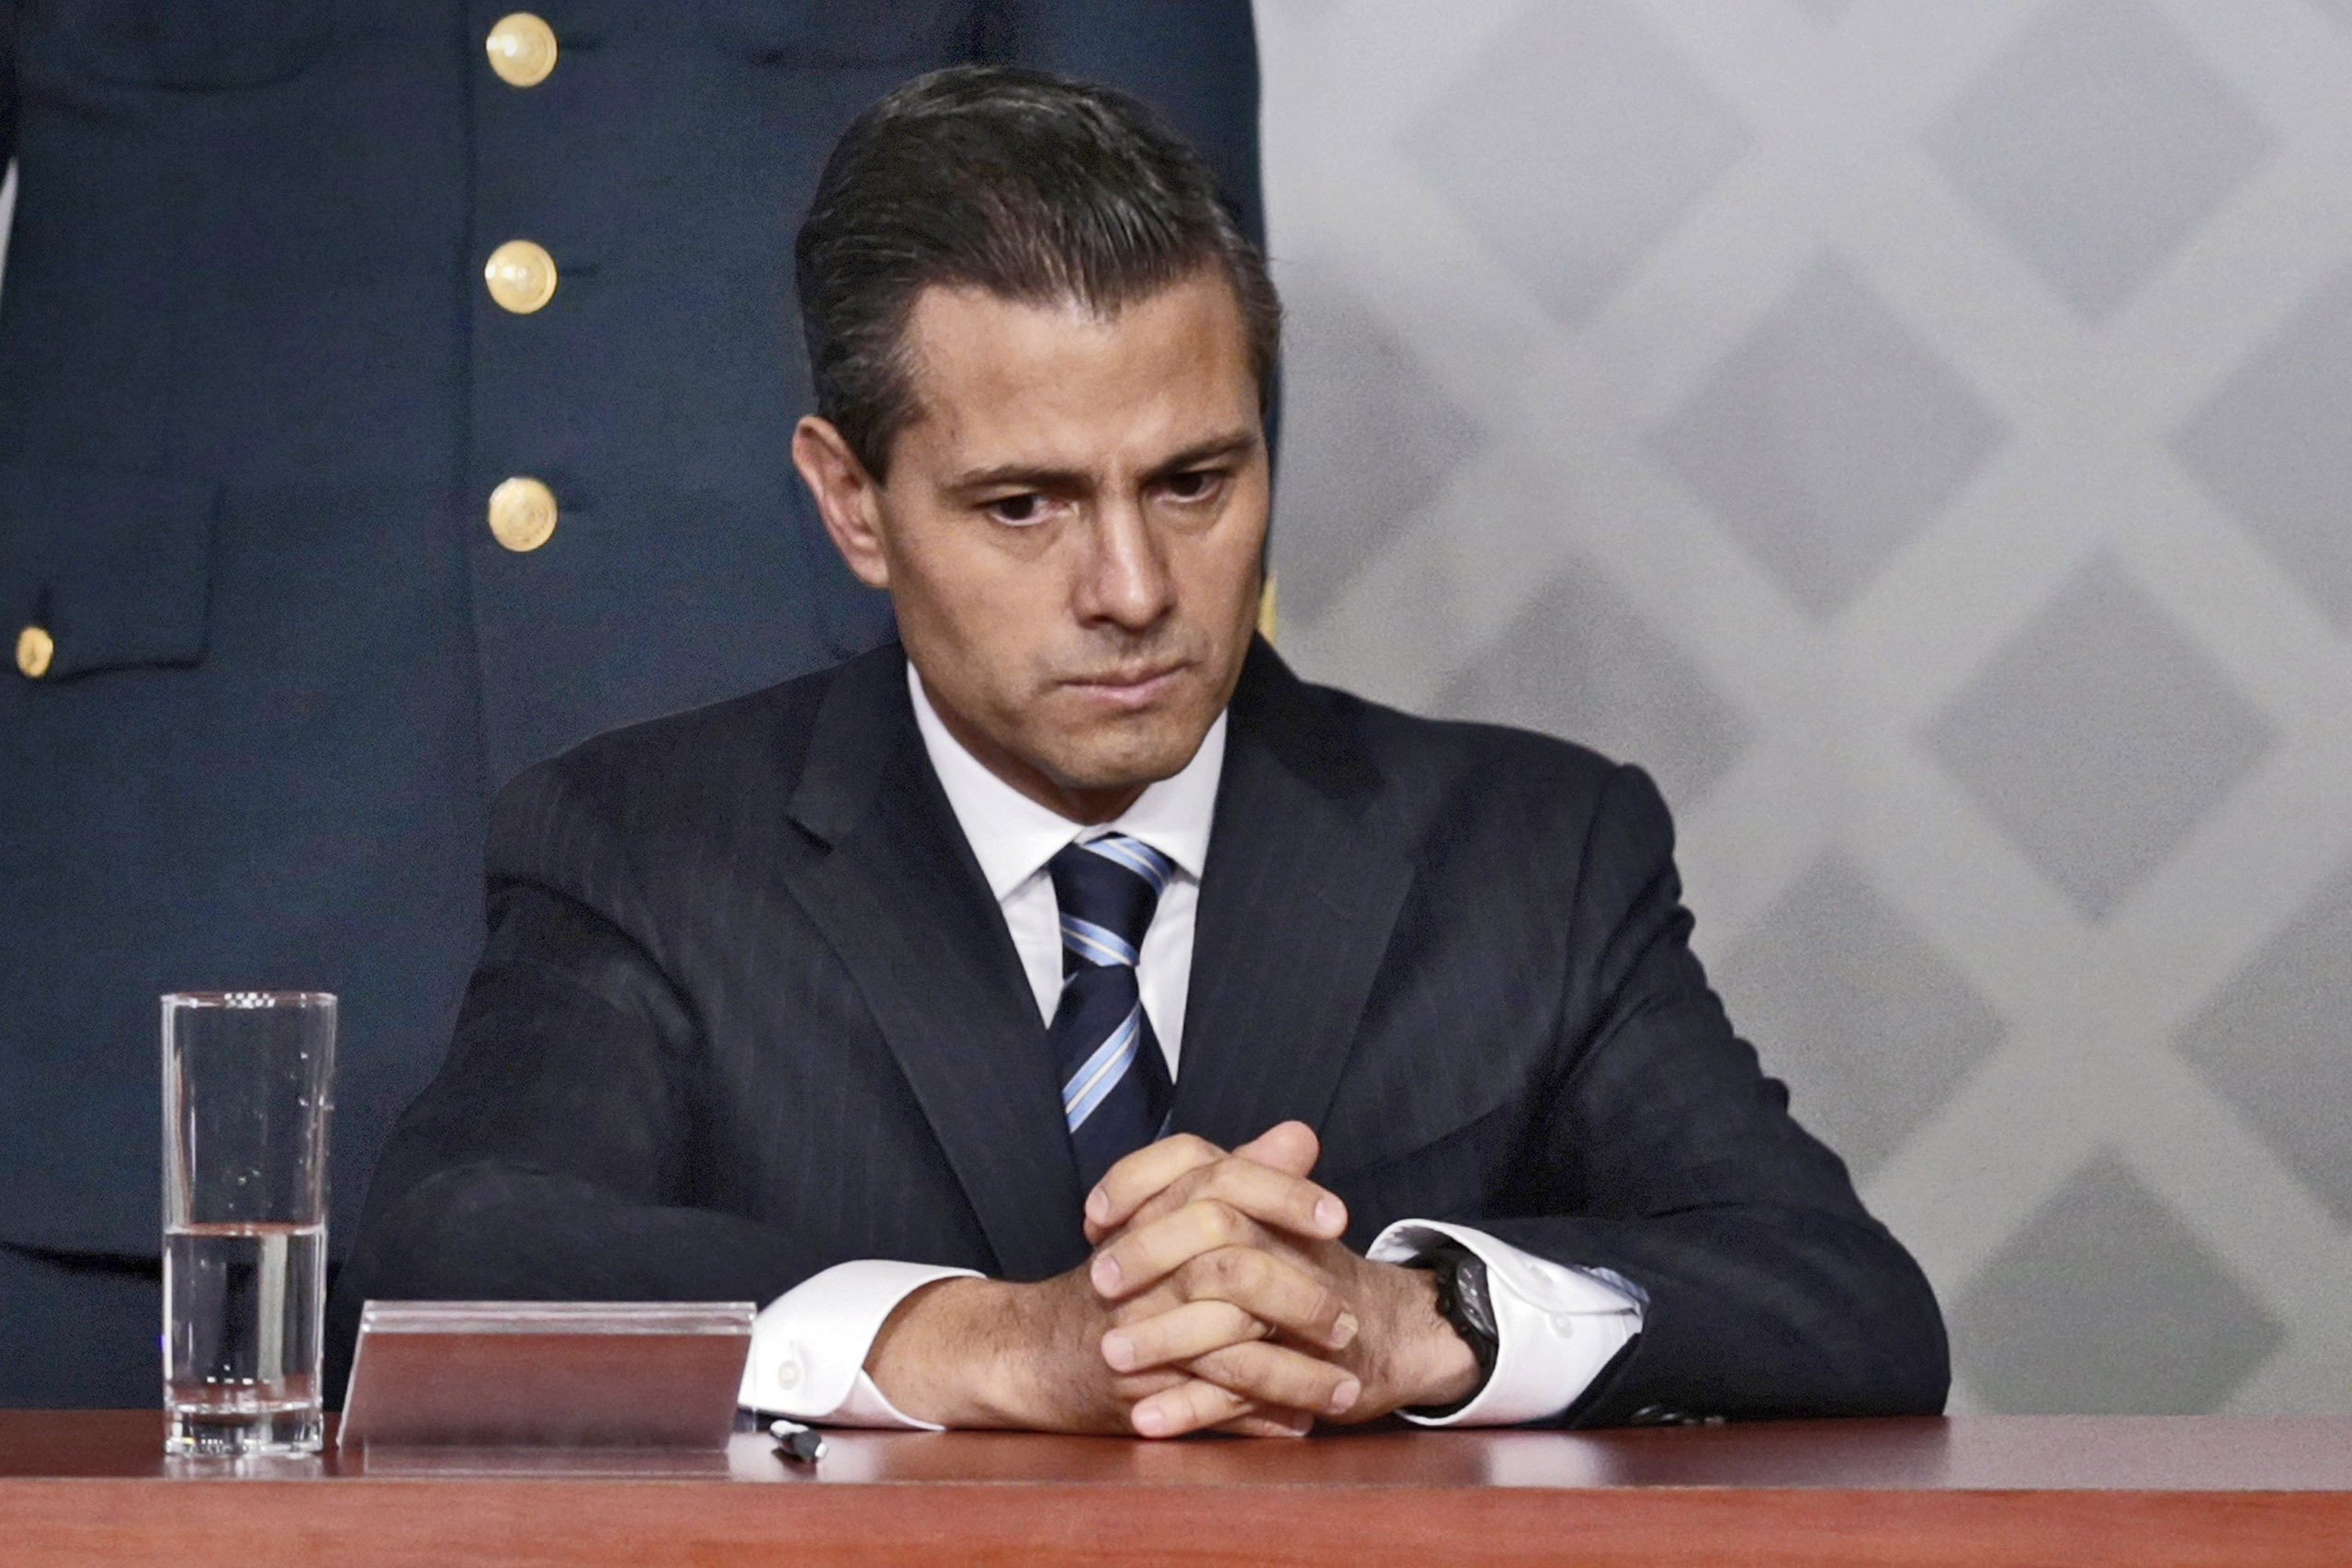 The embattled Mexican leader at a meeting with lawyers in Mexico City on Nov. 21